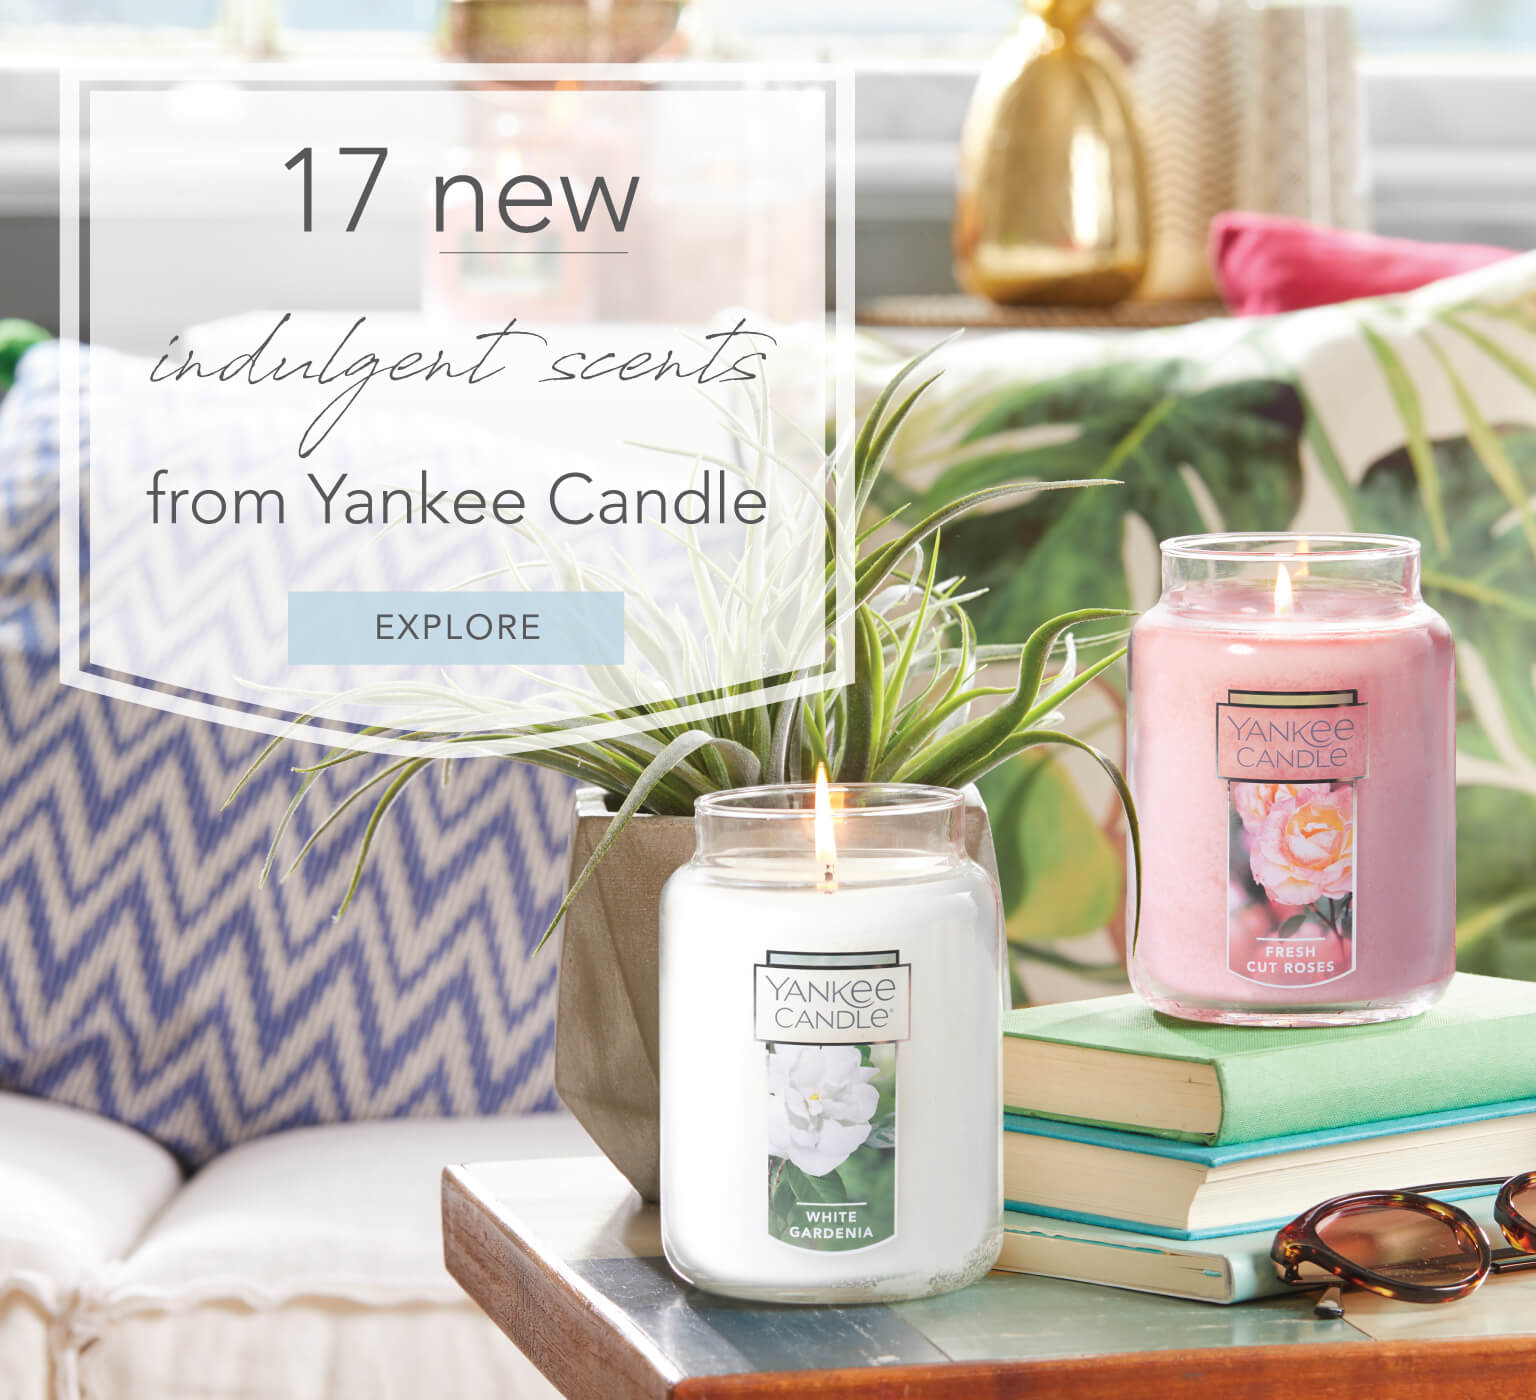 New Yankee Fragrance!